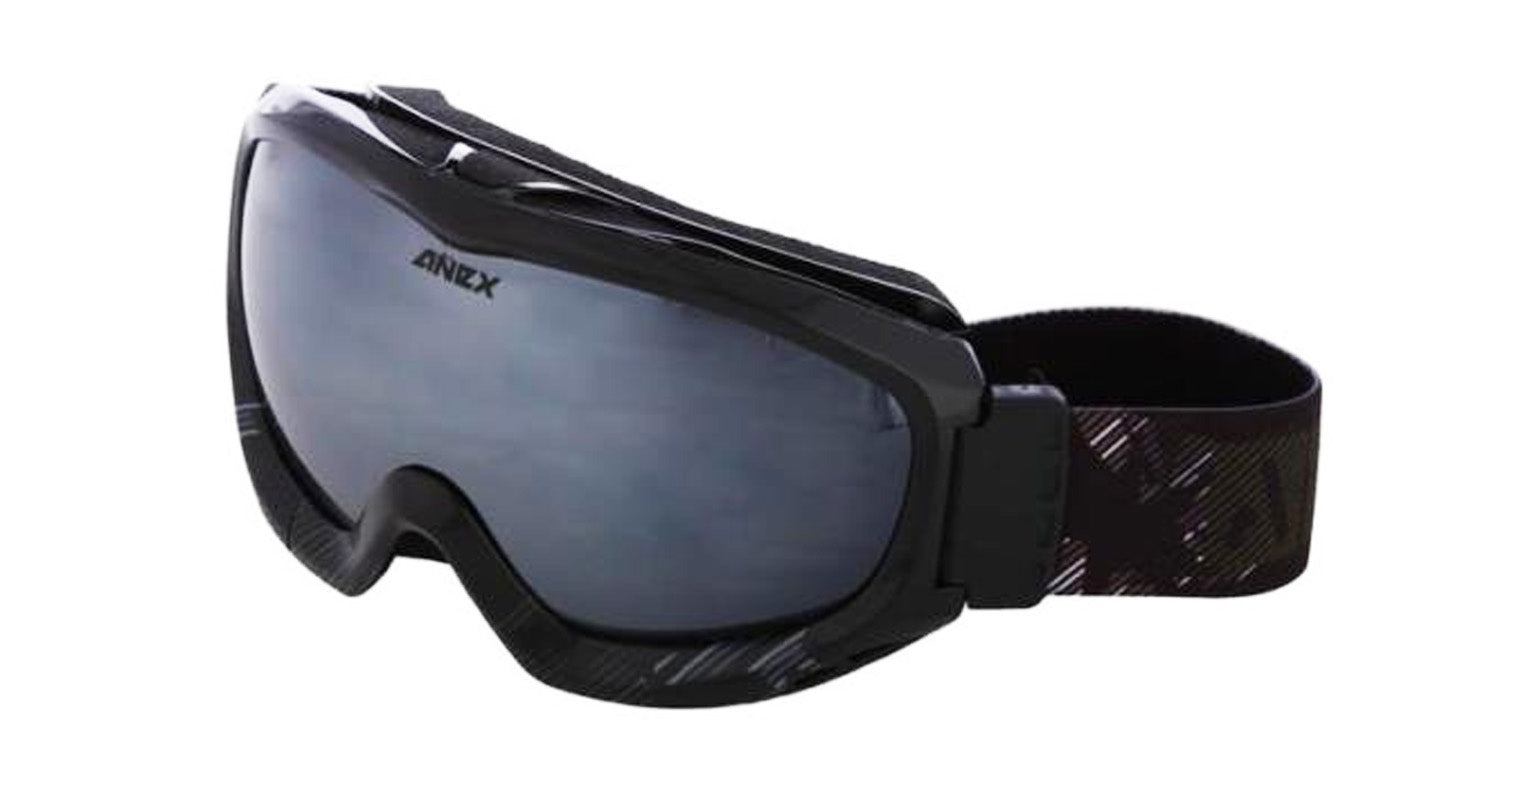 f9b3fee0b5 Anex Avalanche Scope Polarized Snowboard Ski Goggles Black Mirror Anti-Fog